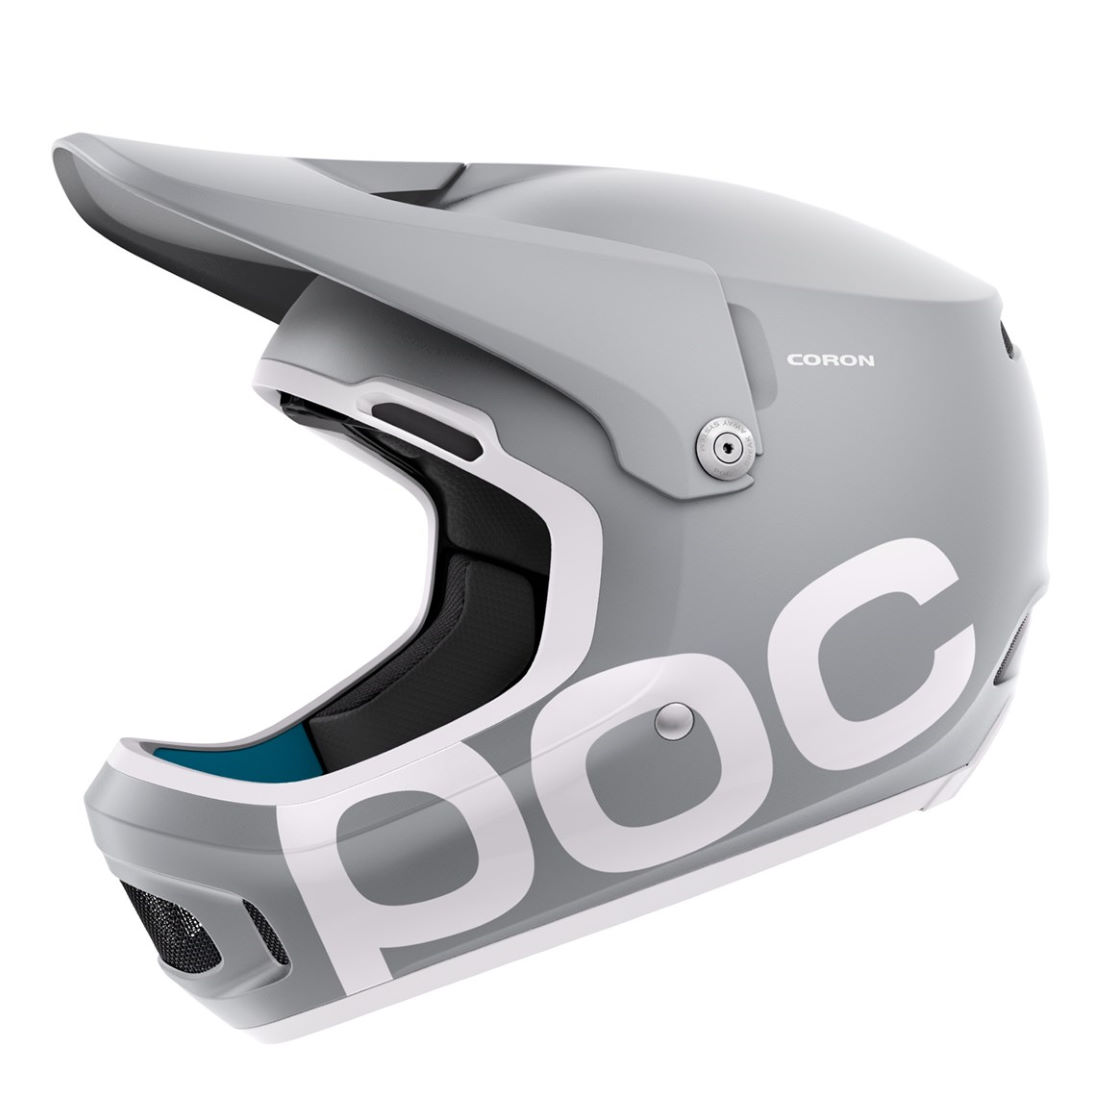 Poc full face helmet